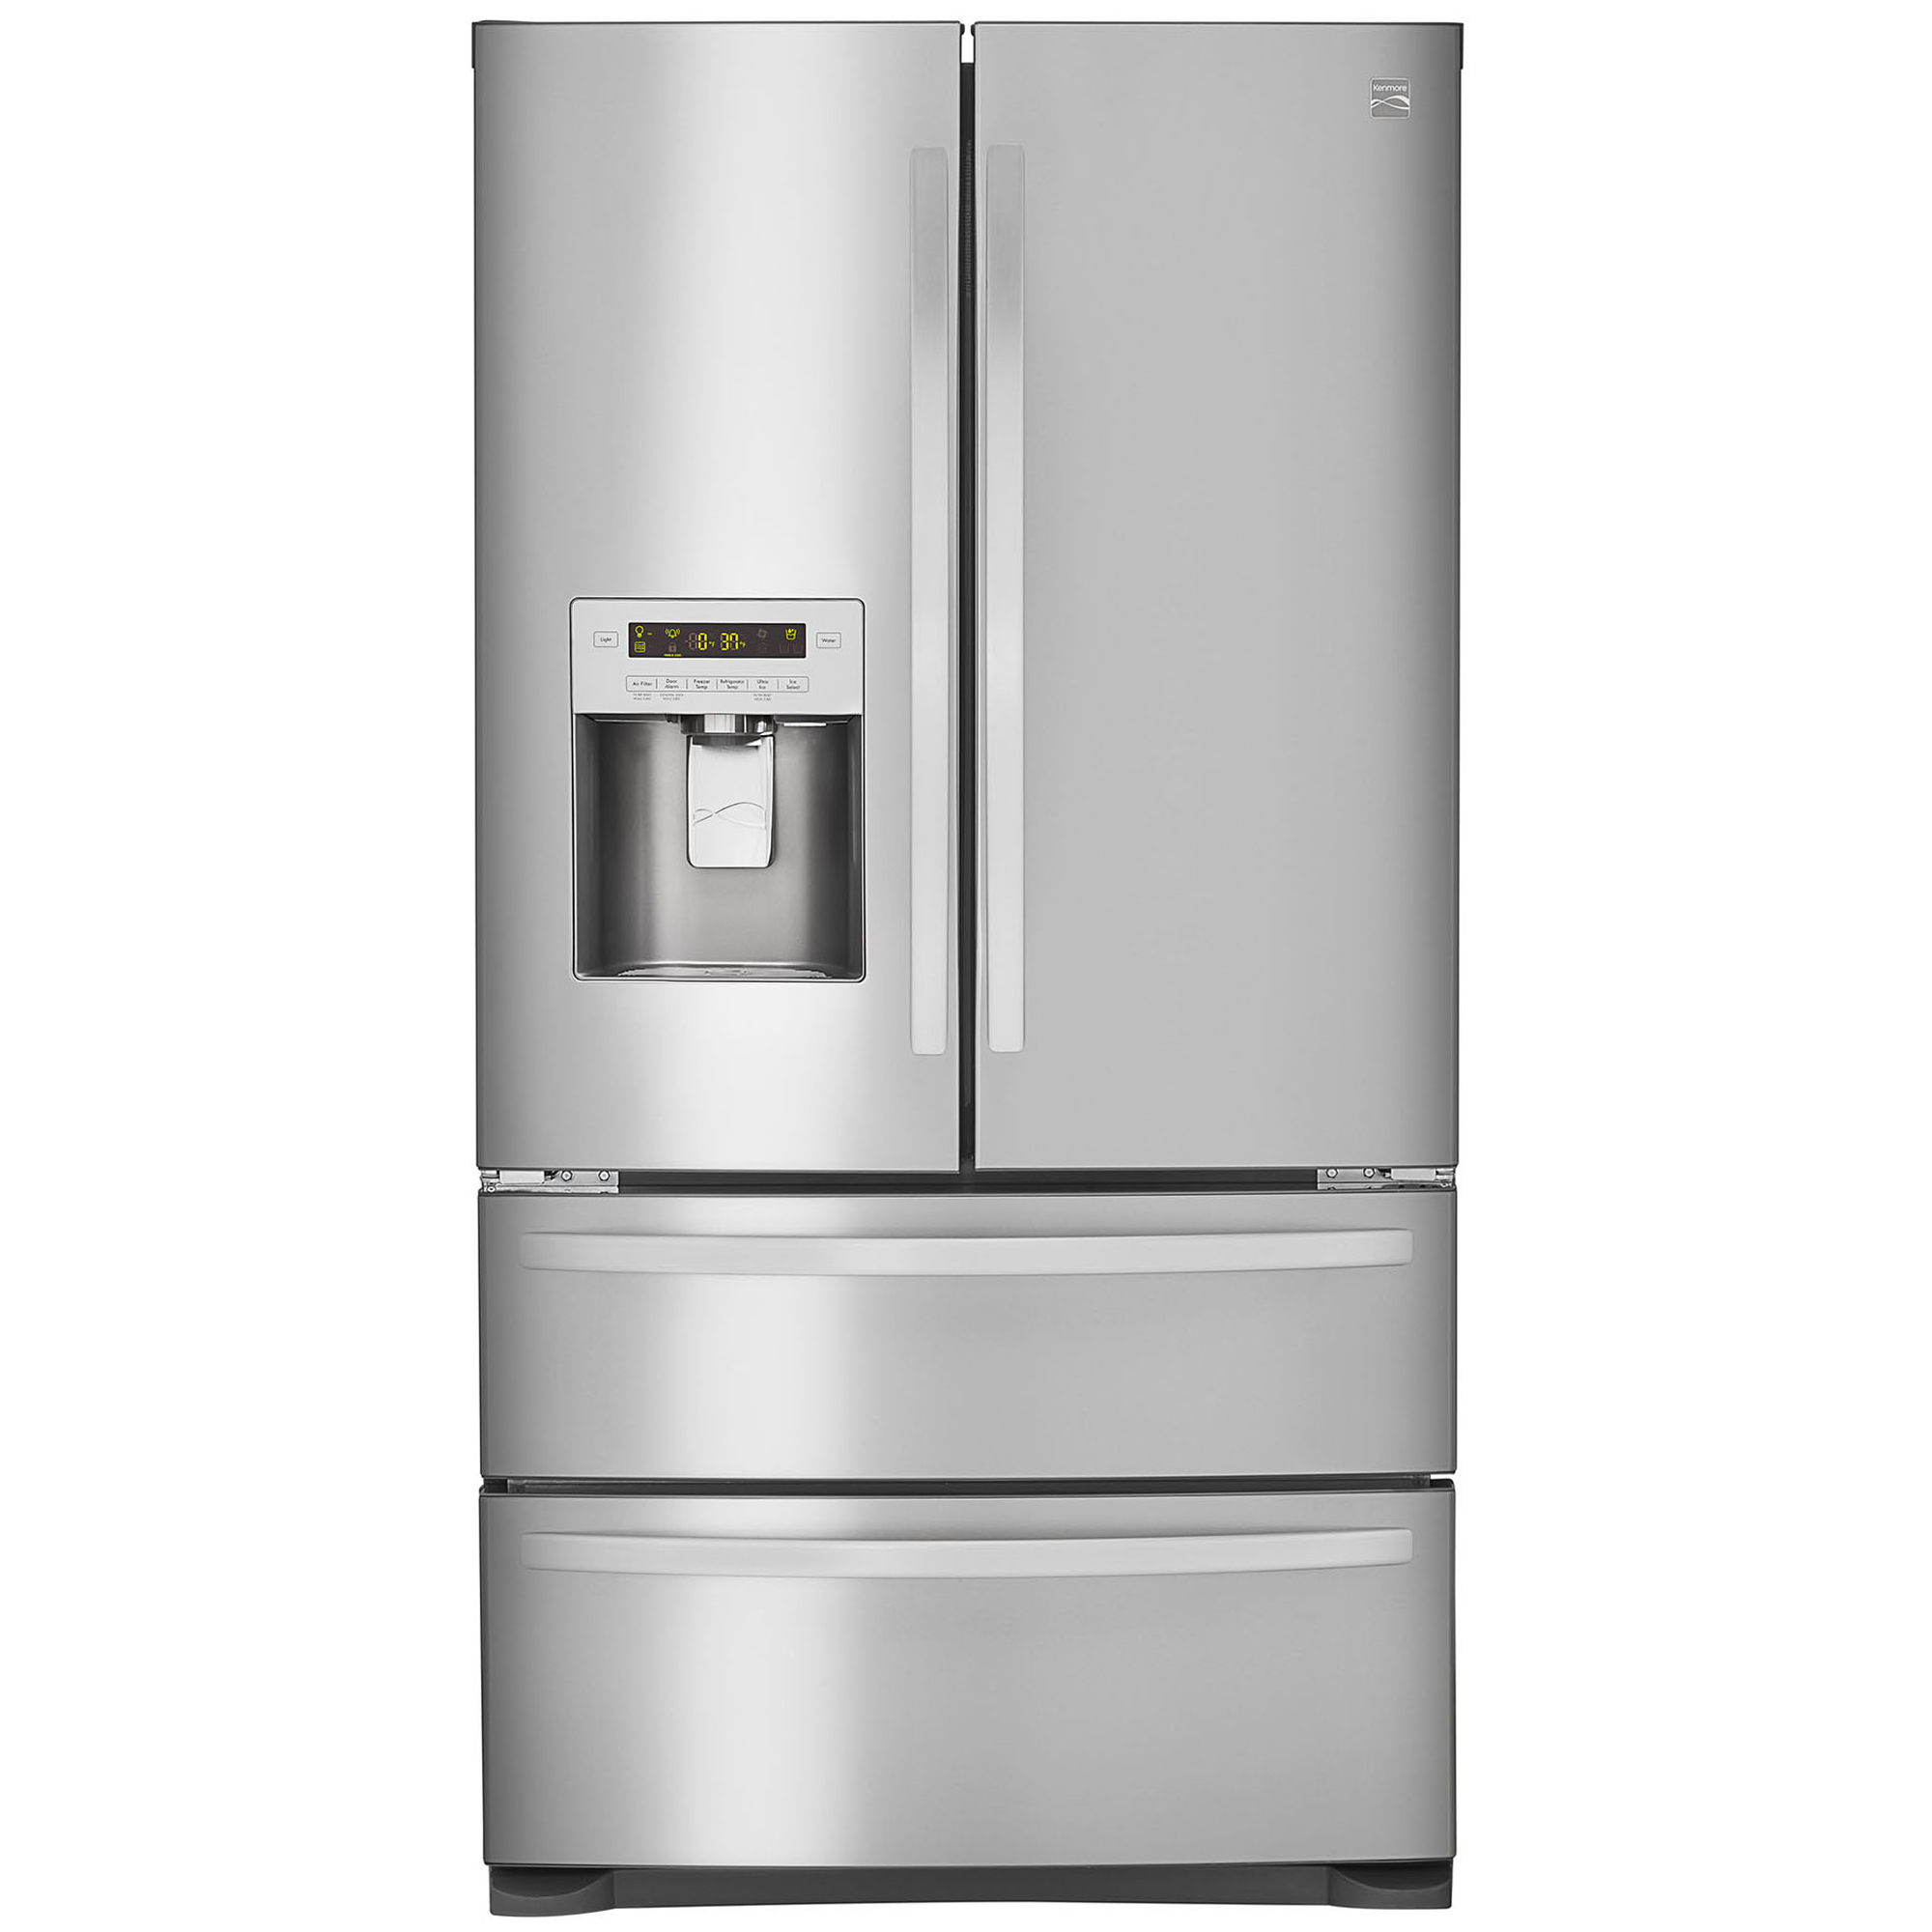 Kenmore 72493 26.7 cu. ft. 4-Door French Door Refrigerator w/Dual Freezer Drawers – Stainless Steel